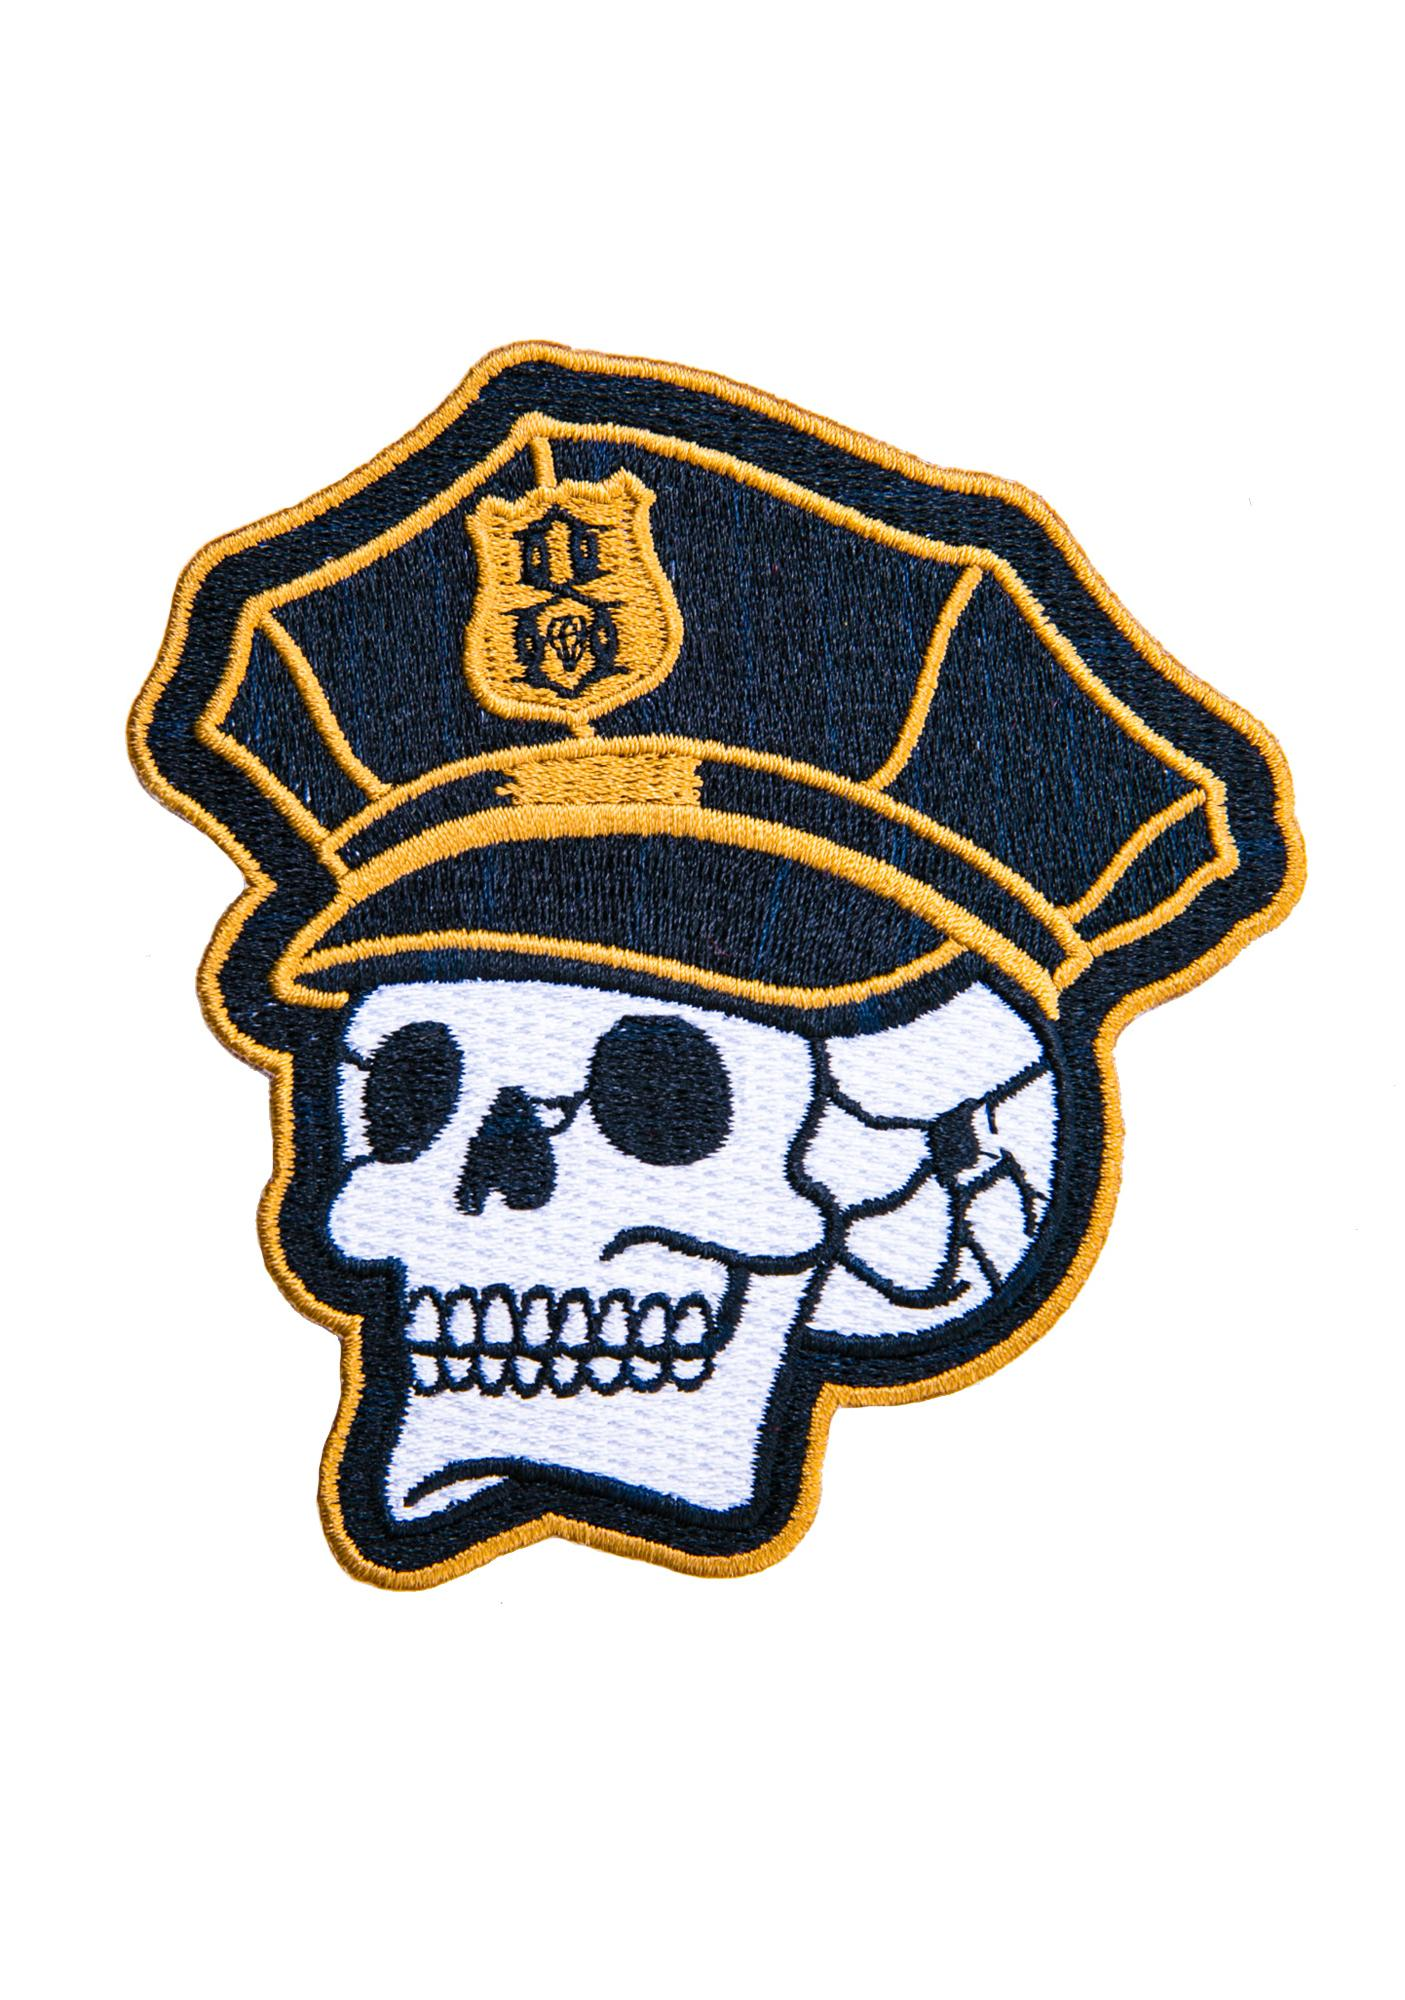 Rebel8 Civil Servant Patch